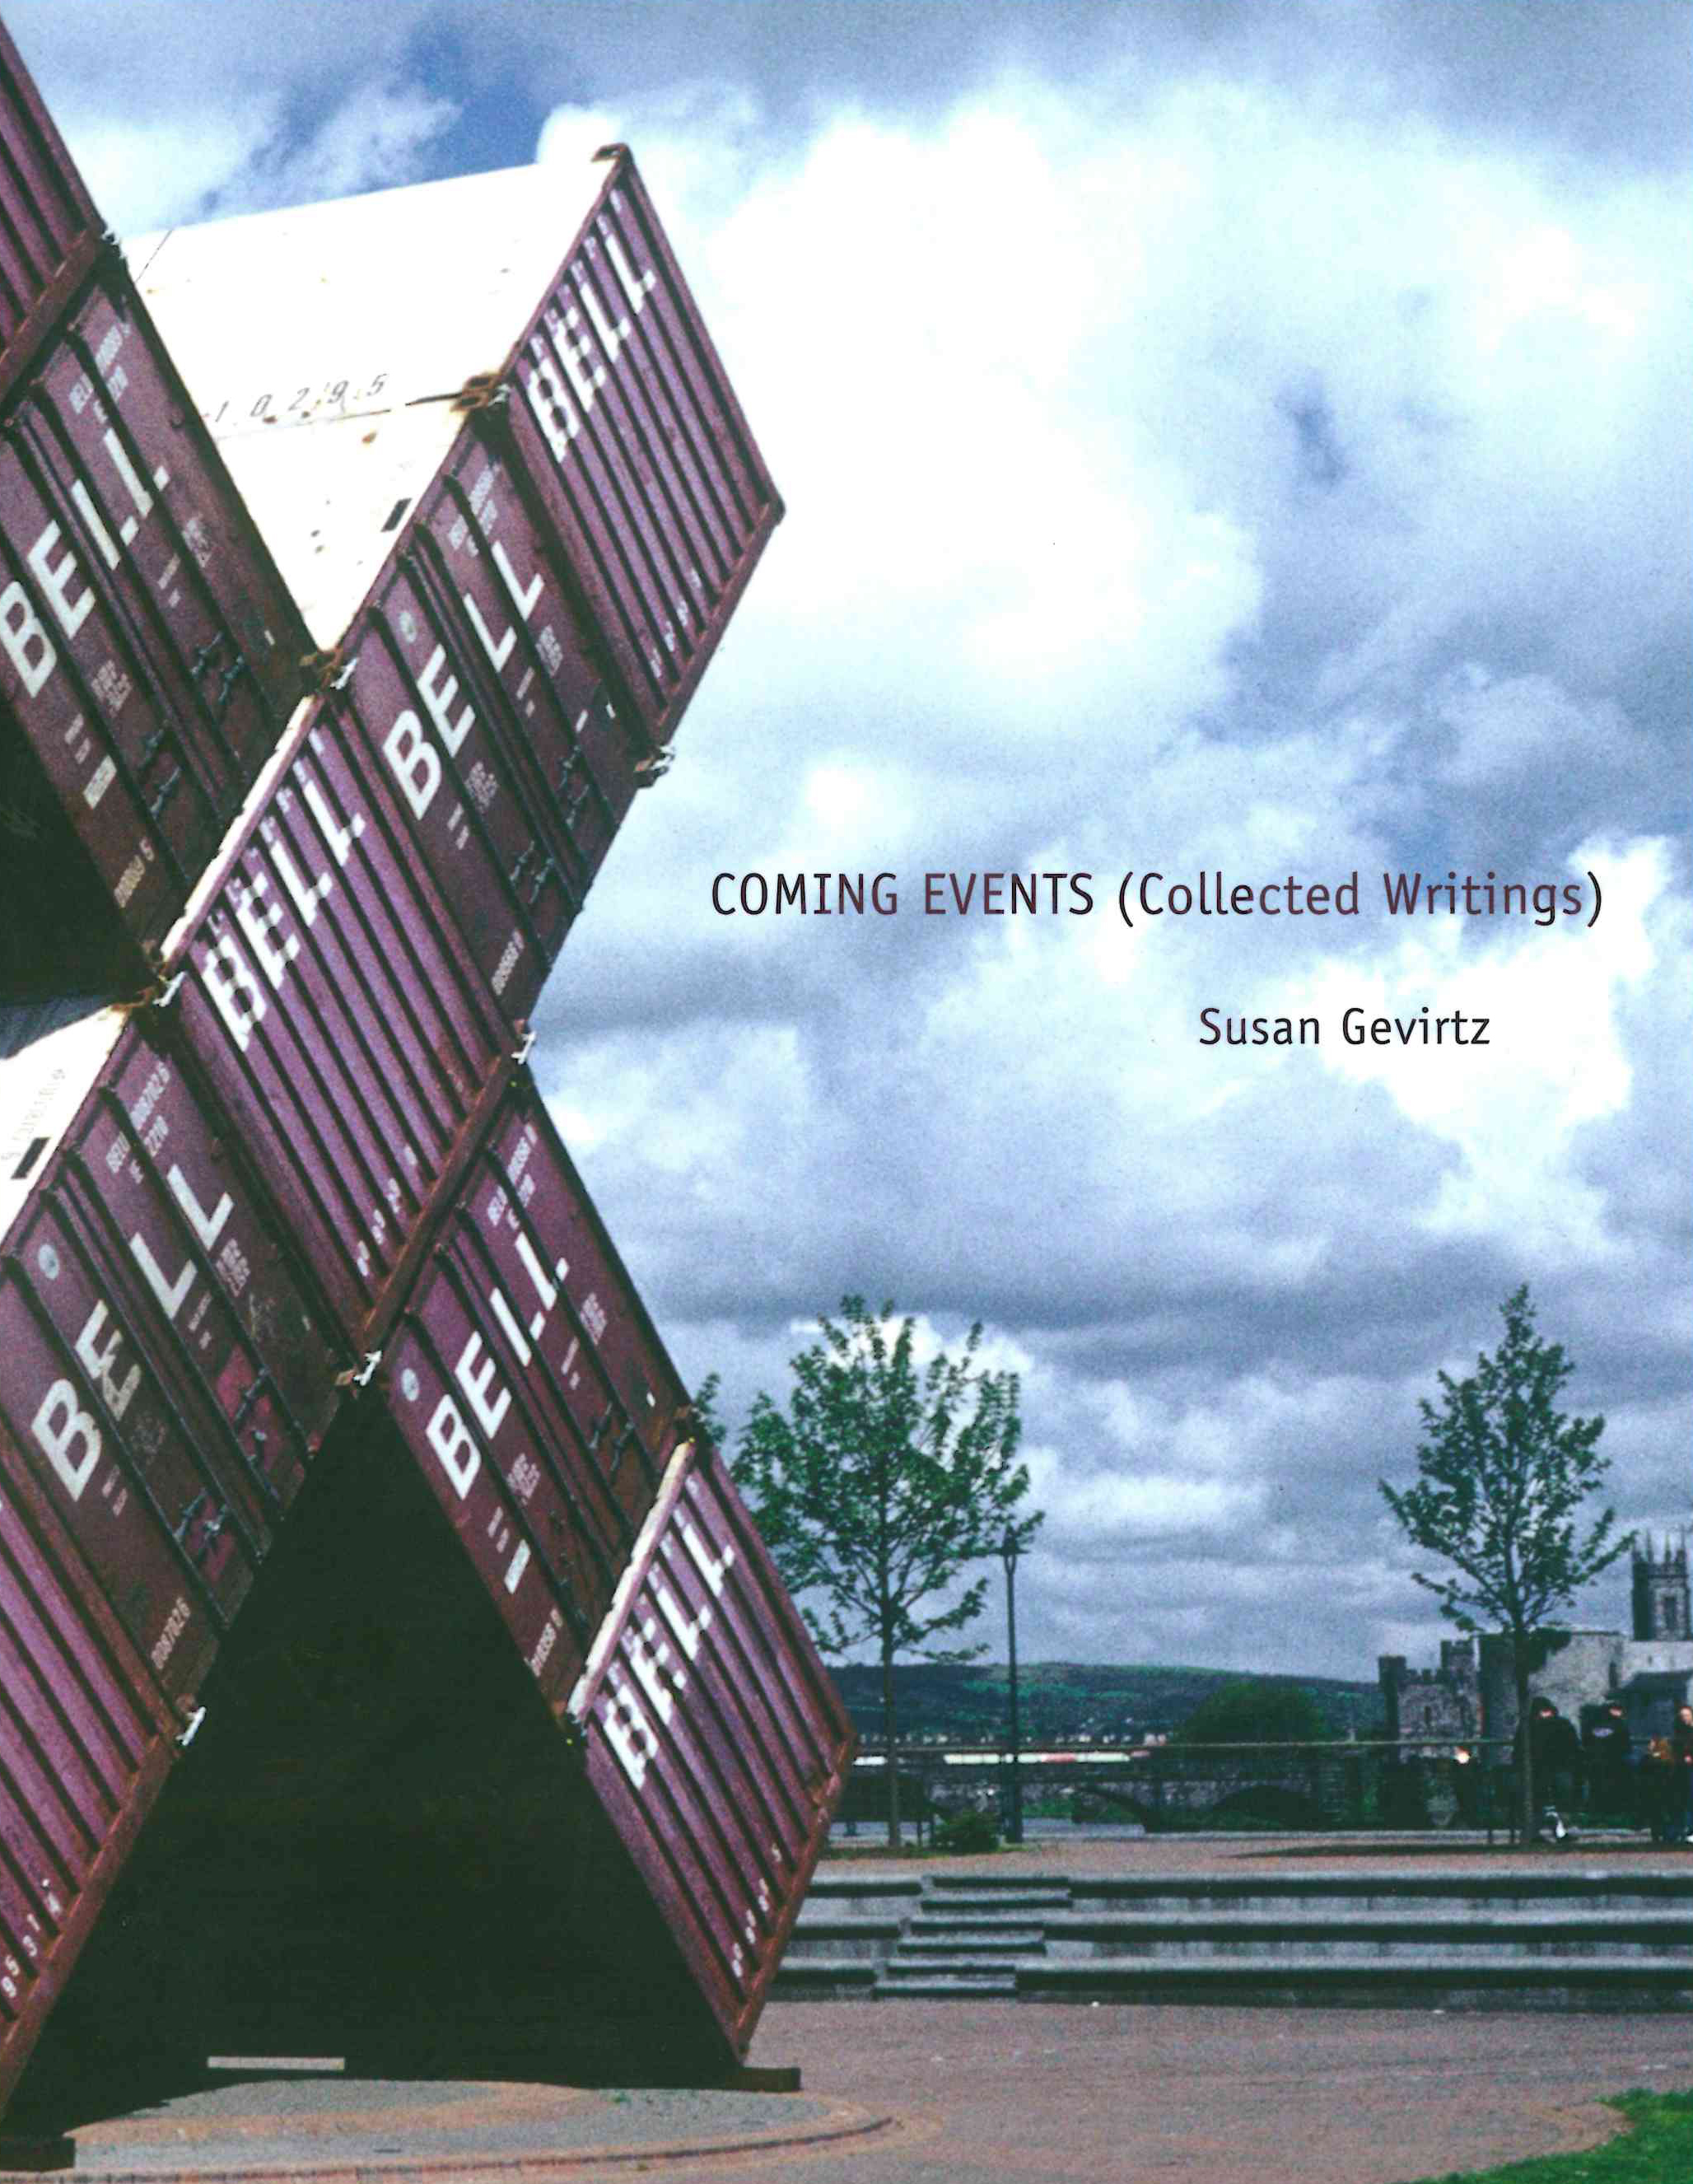 Coming Events (Collected Writings)